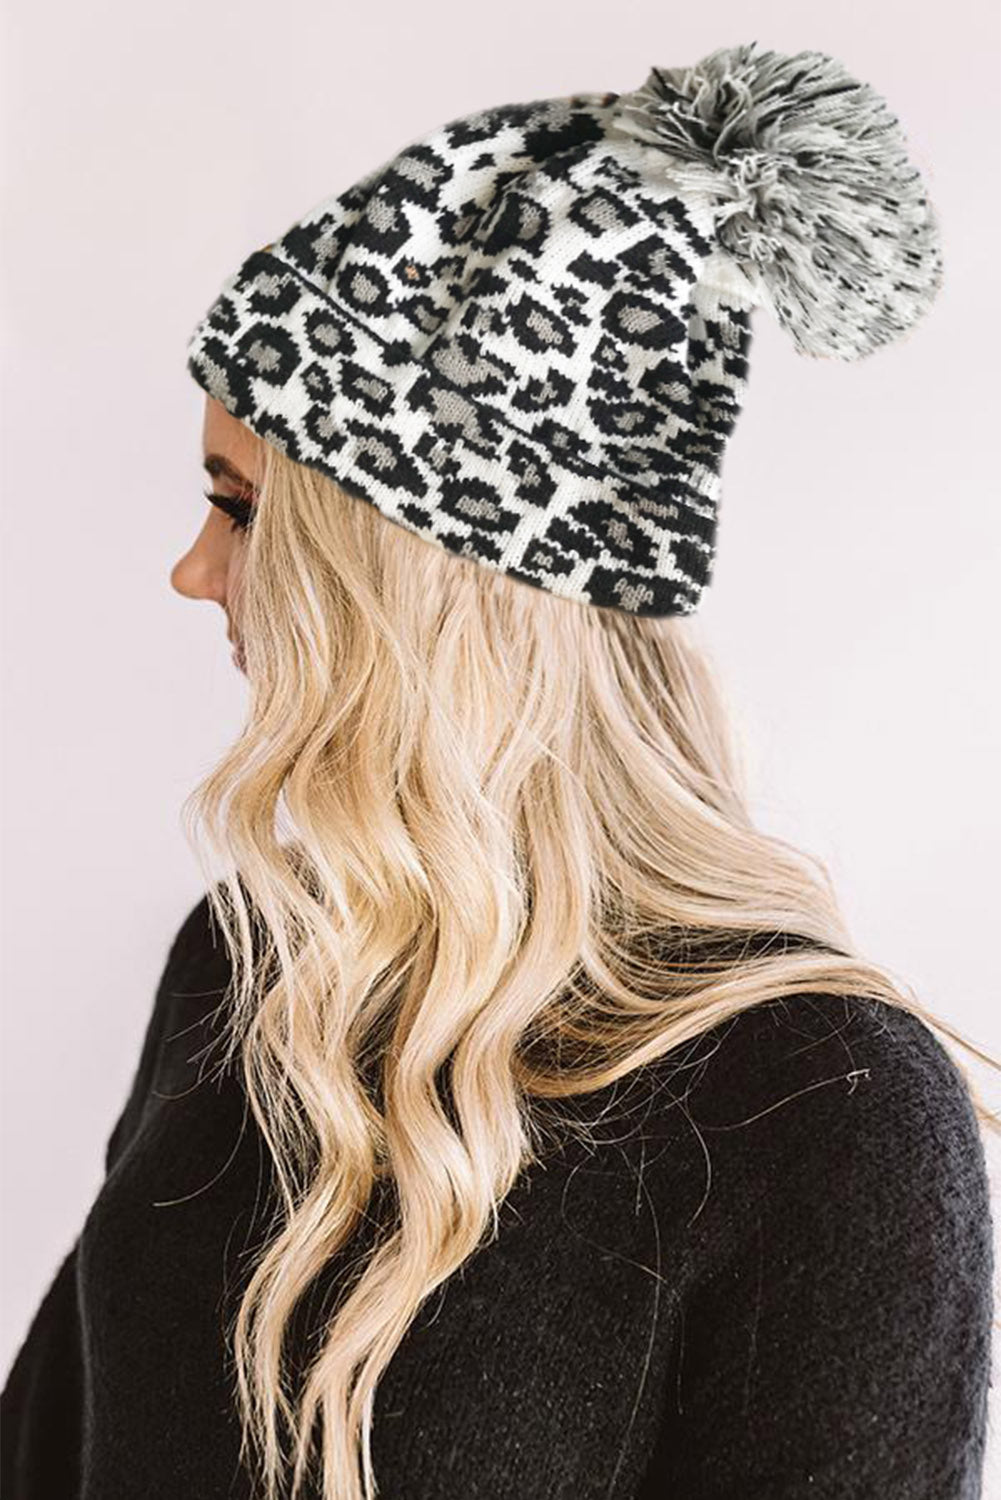 White Leopard Pom Beanie Hats & Caps Discount Designer Fashion Clothes Shoes Bags Women Men Kids Children Black Owned Business